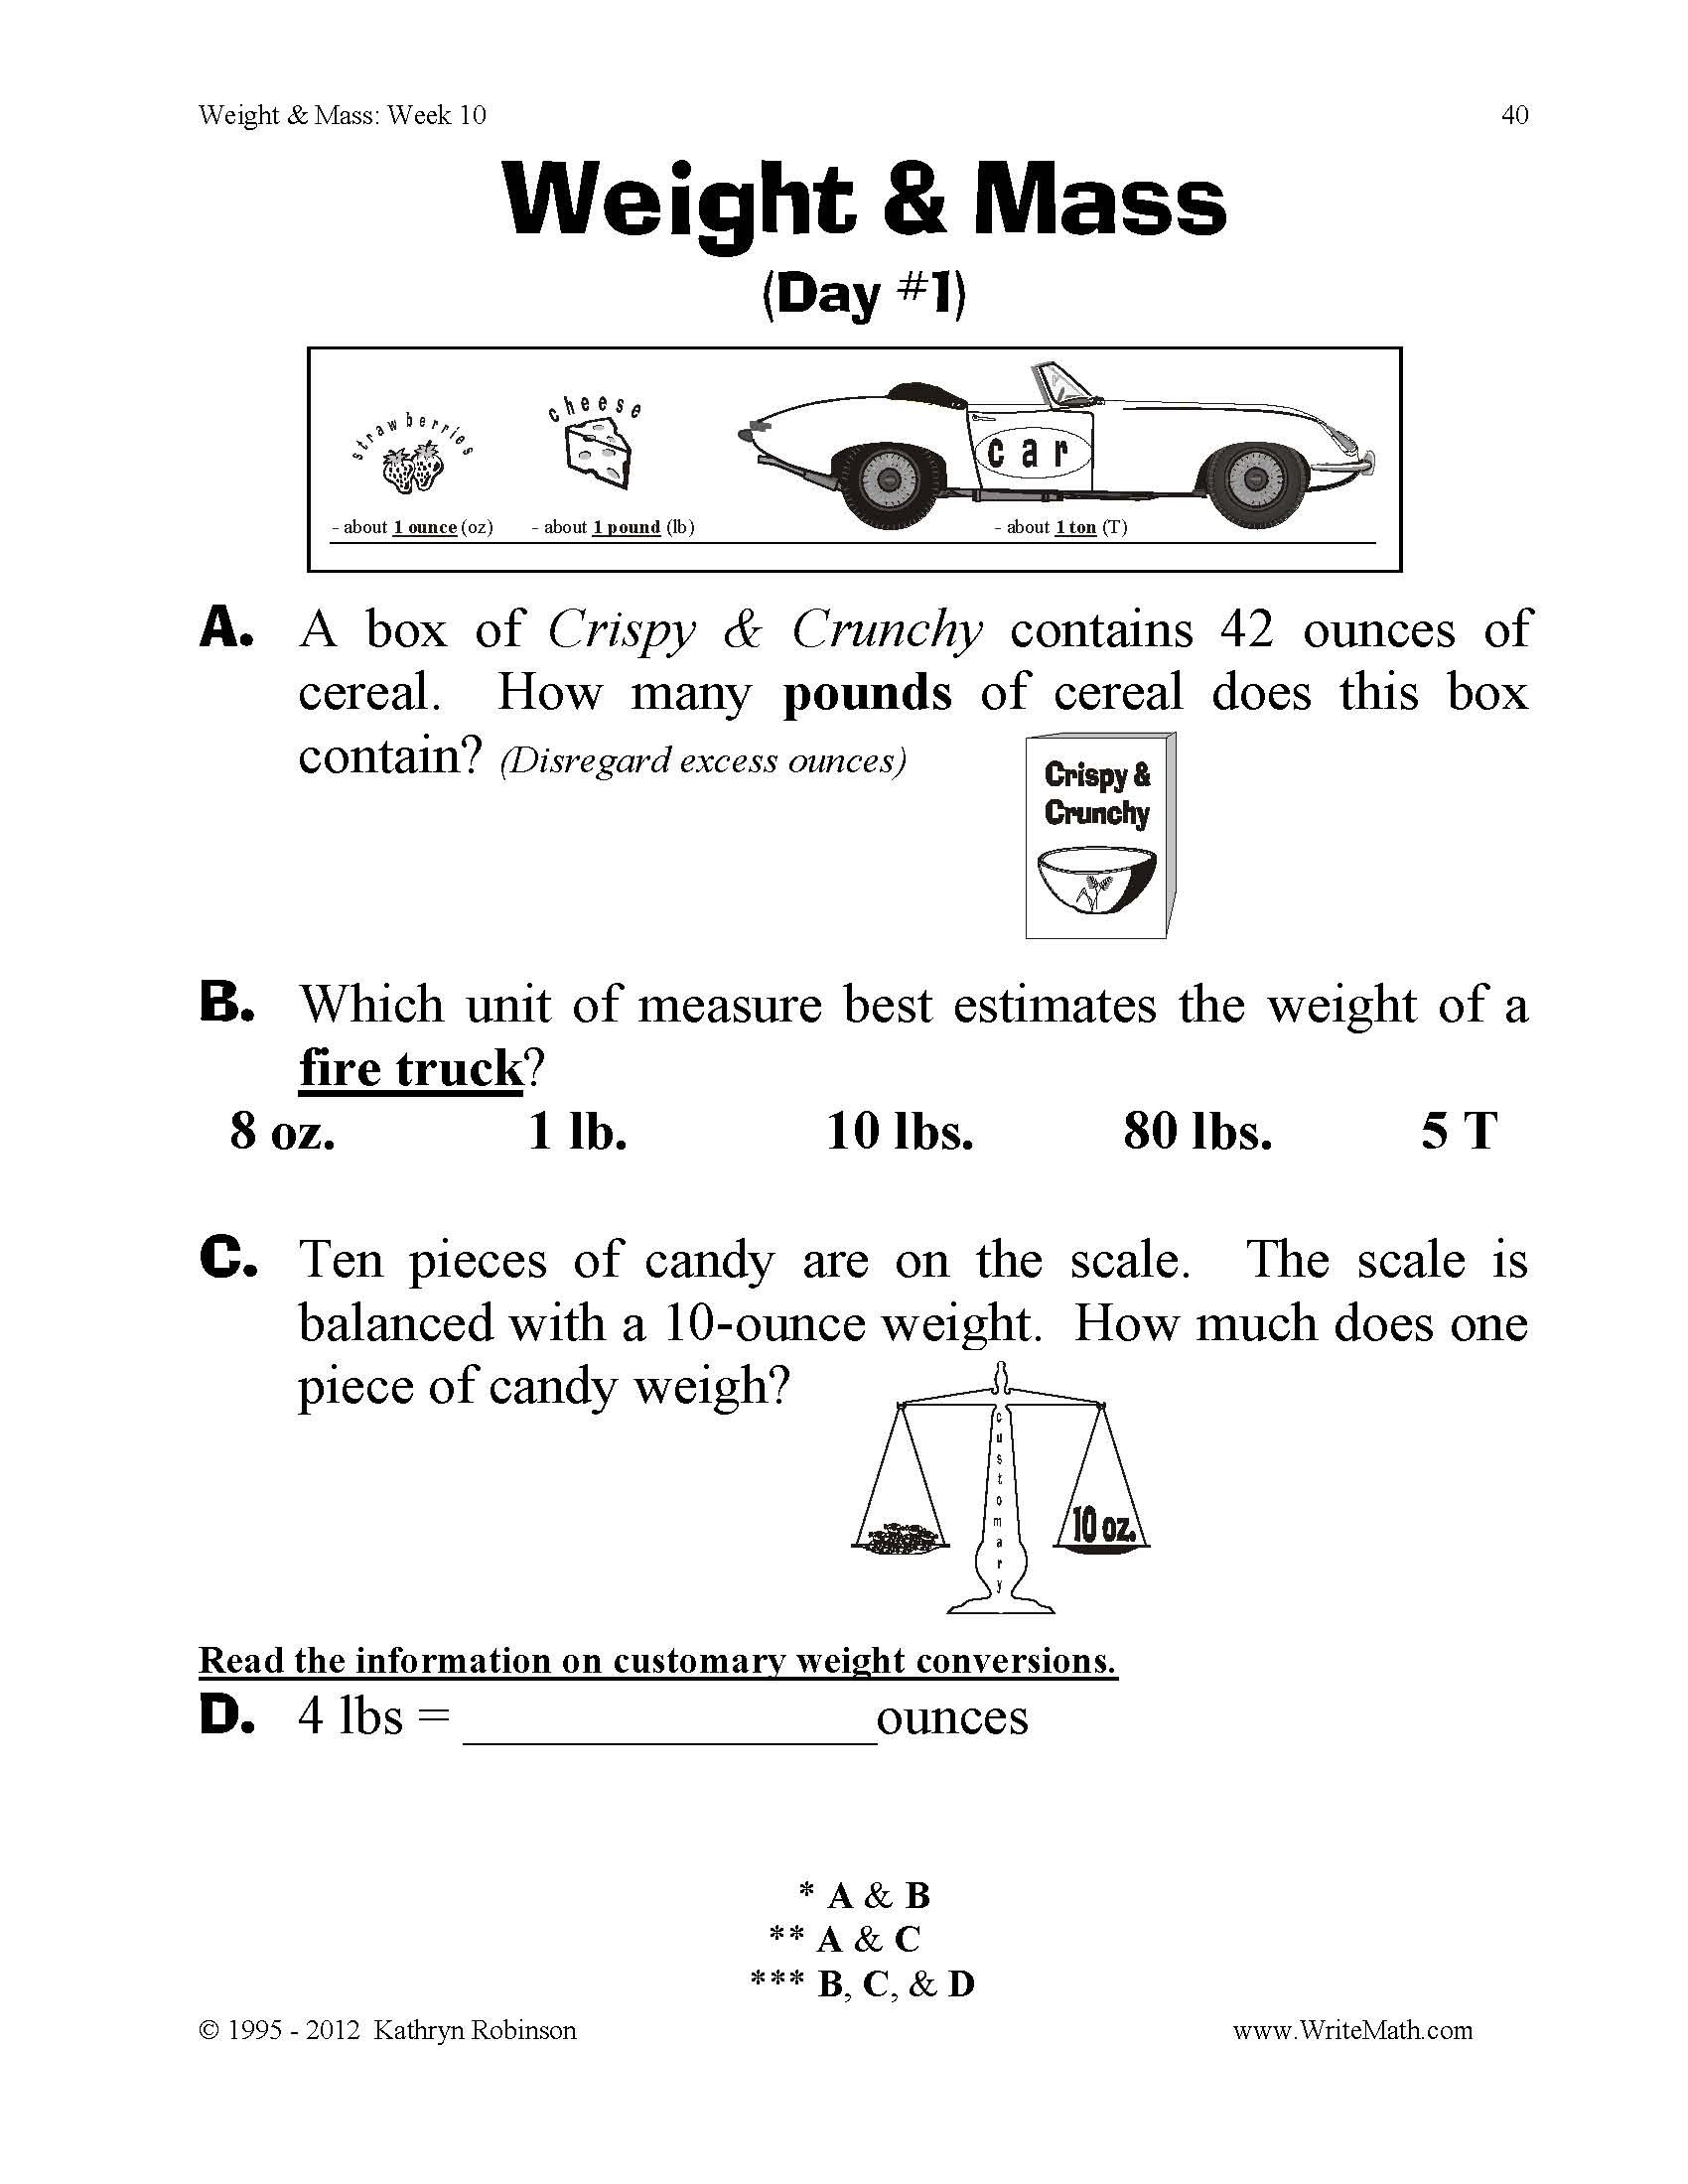 worksheet Ring Of Fire Worksheet teaching weight mass 3rd 4th 5th grade math worksheets just turn and share volume 16 kathryn robinson 97819319